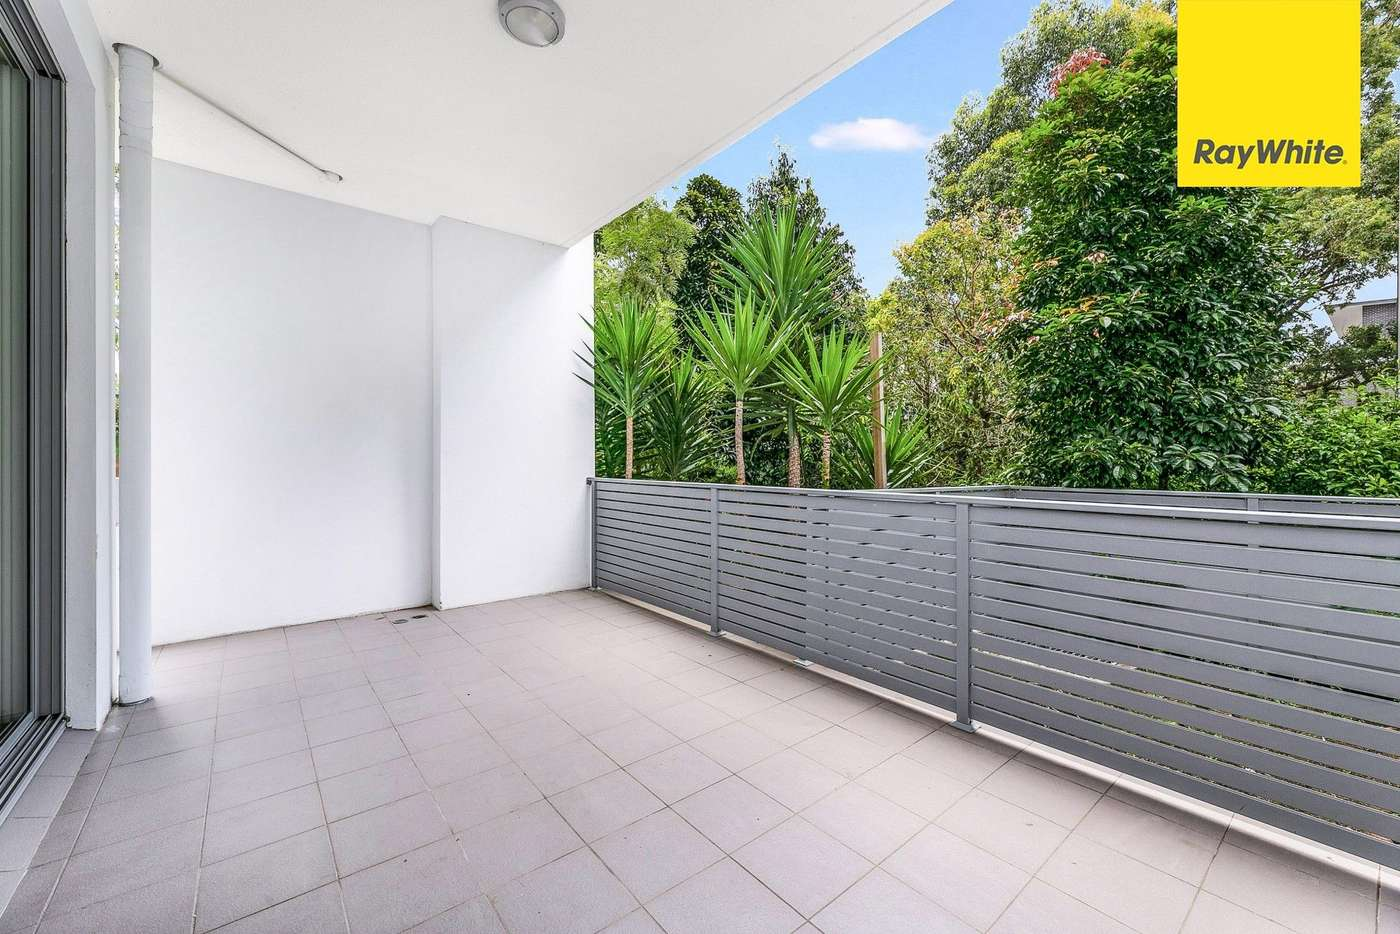 Sixth view of Homely apartment listing, 5/54-56 Keeler Street, Carlingford NSW 2118